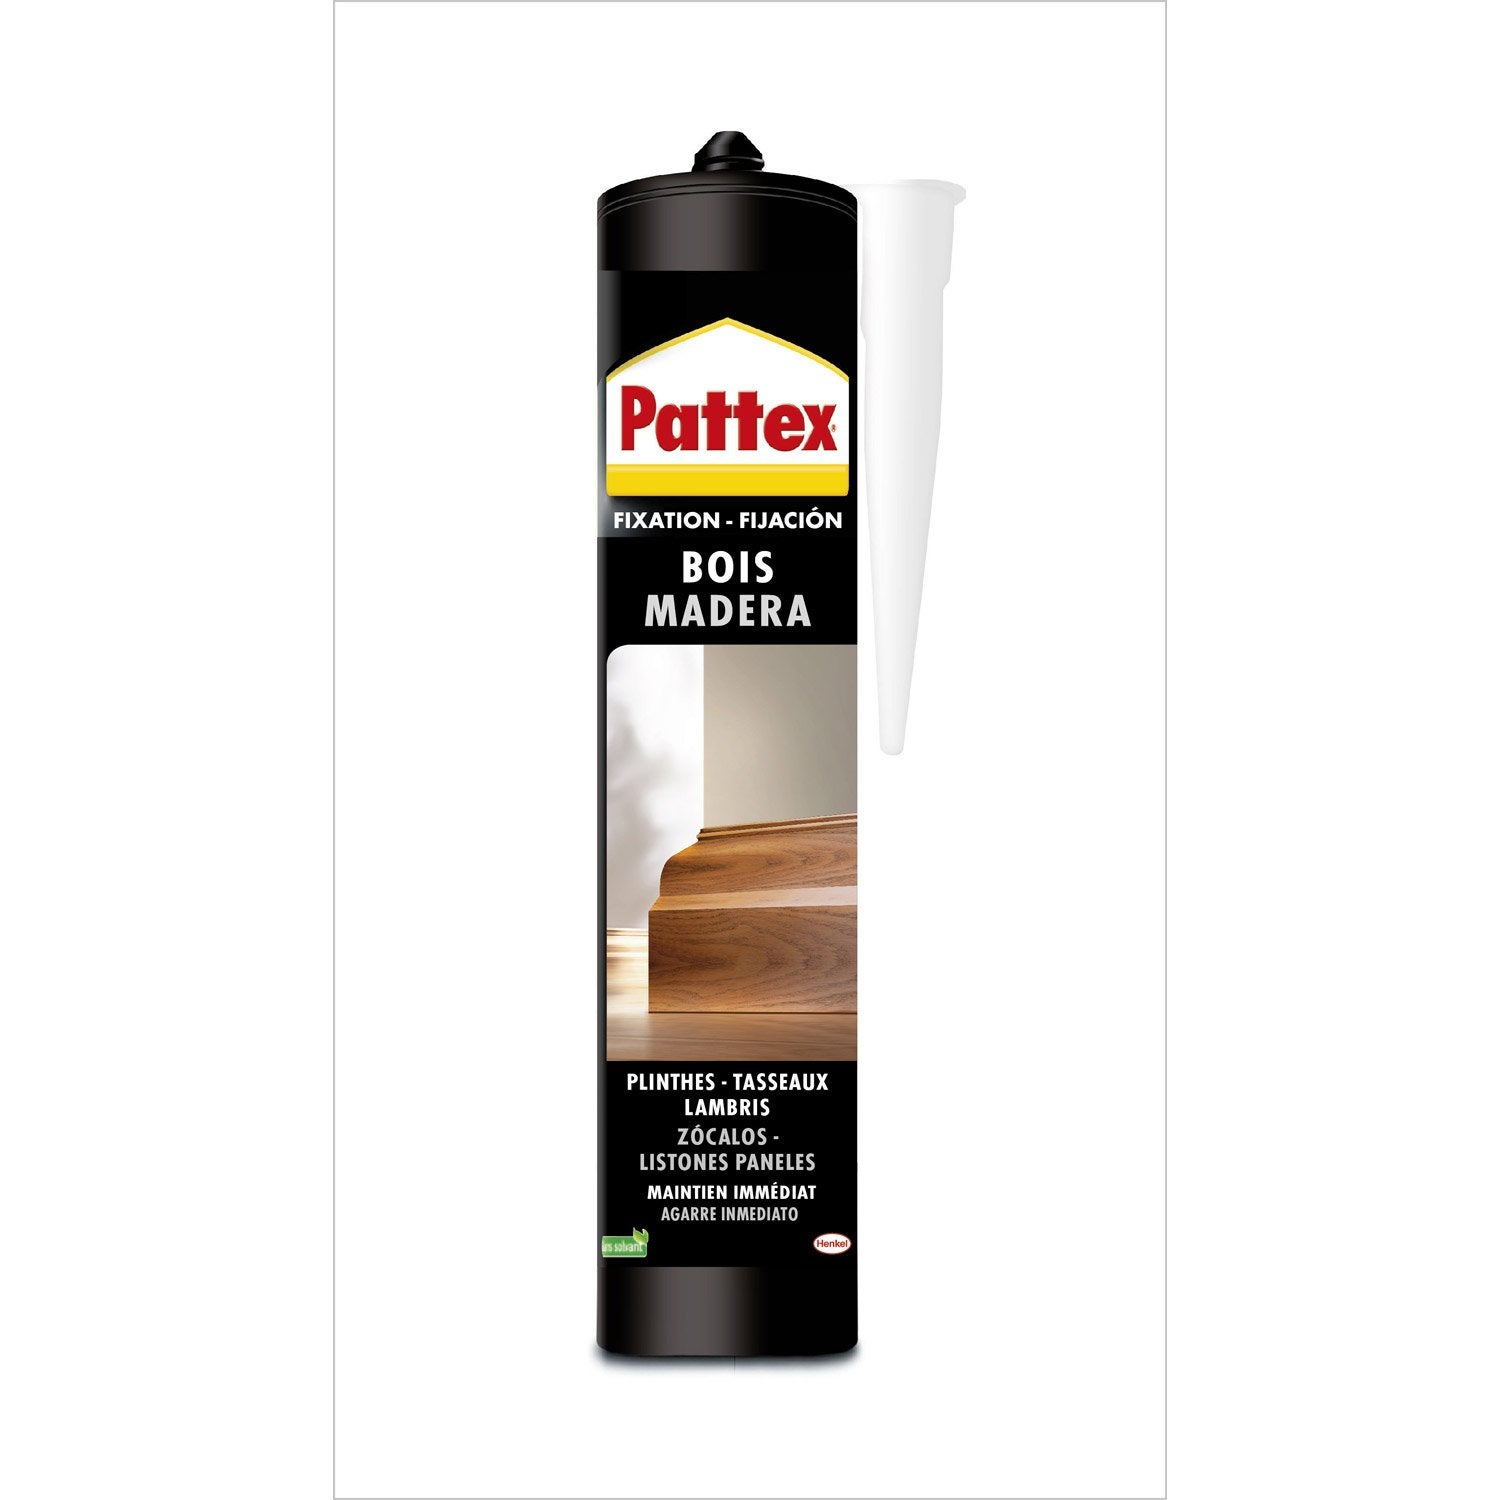 barre de seuil carrelage leroy merlin beautiful carrelage. Black Bedroom Furniture Sets. Home Design Ideas